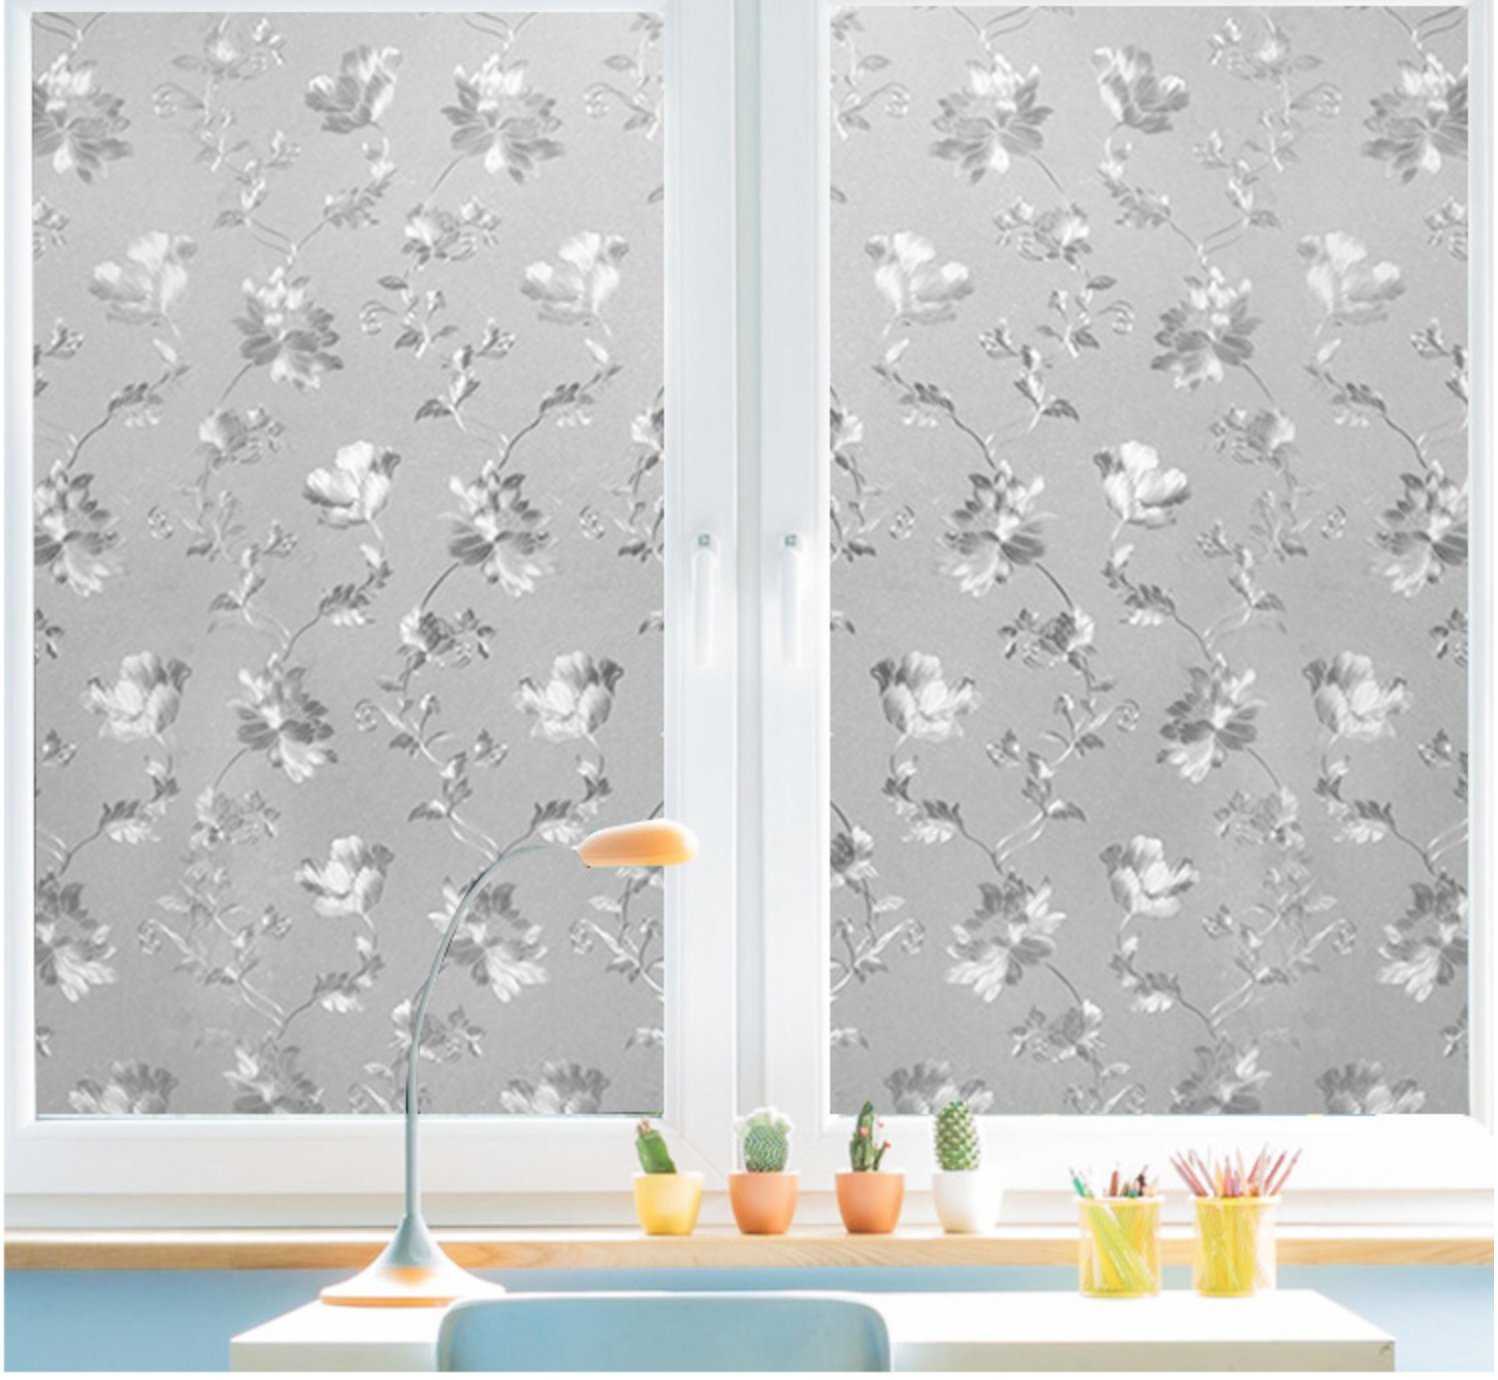 Fancy-Fix Decorative Privacy Vinyl Glass Window Film